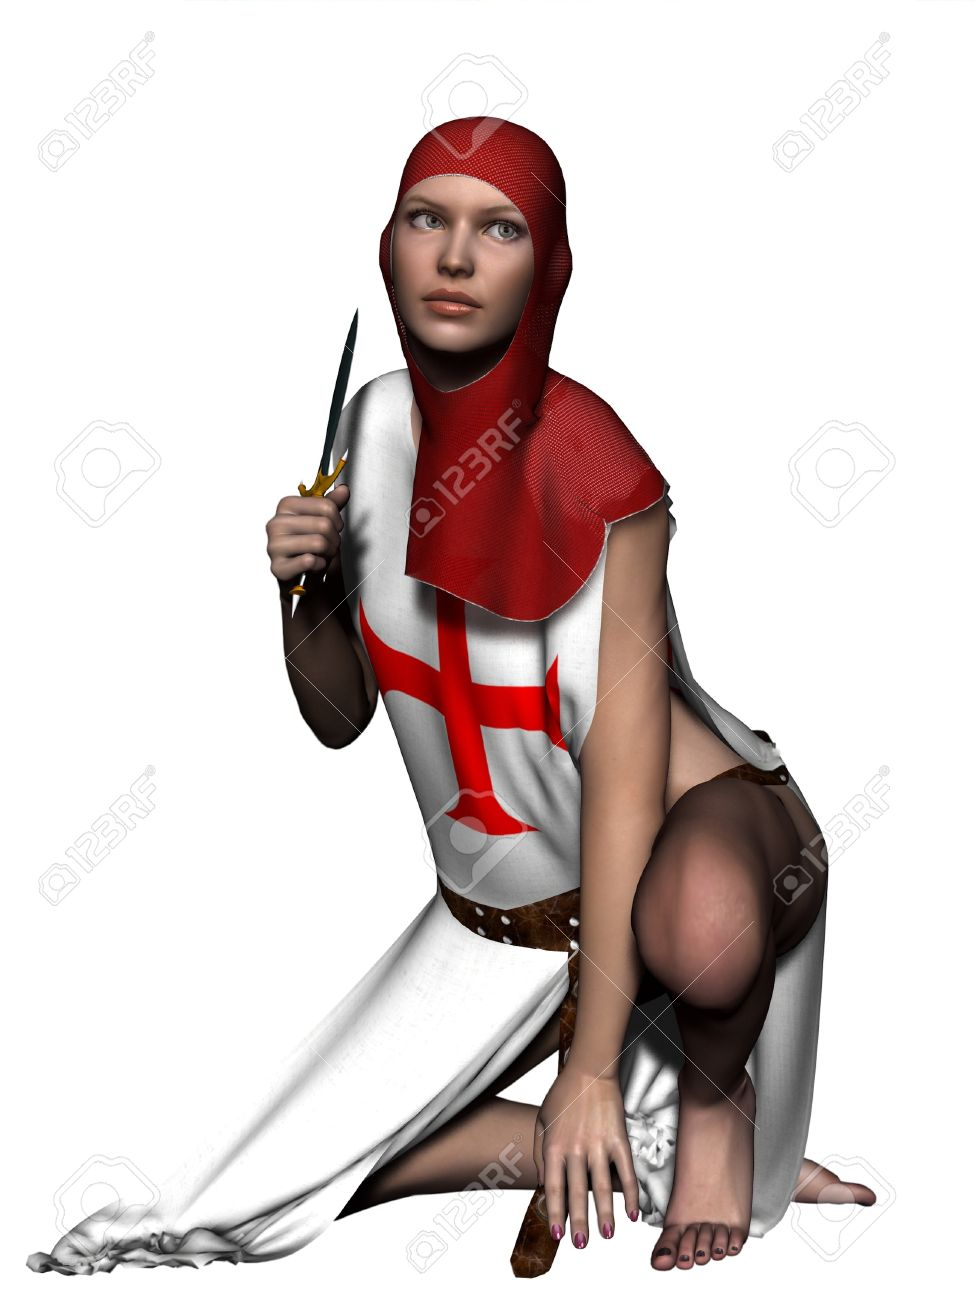 Woman In Templar Coif And Tabard Holding A Dagger Stock Photo.